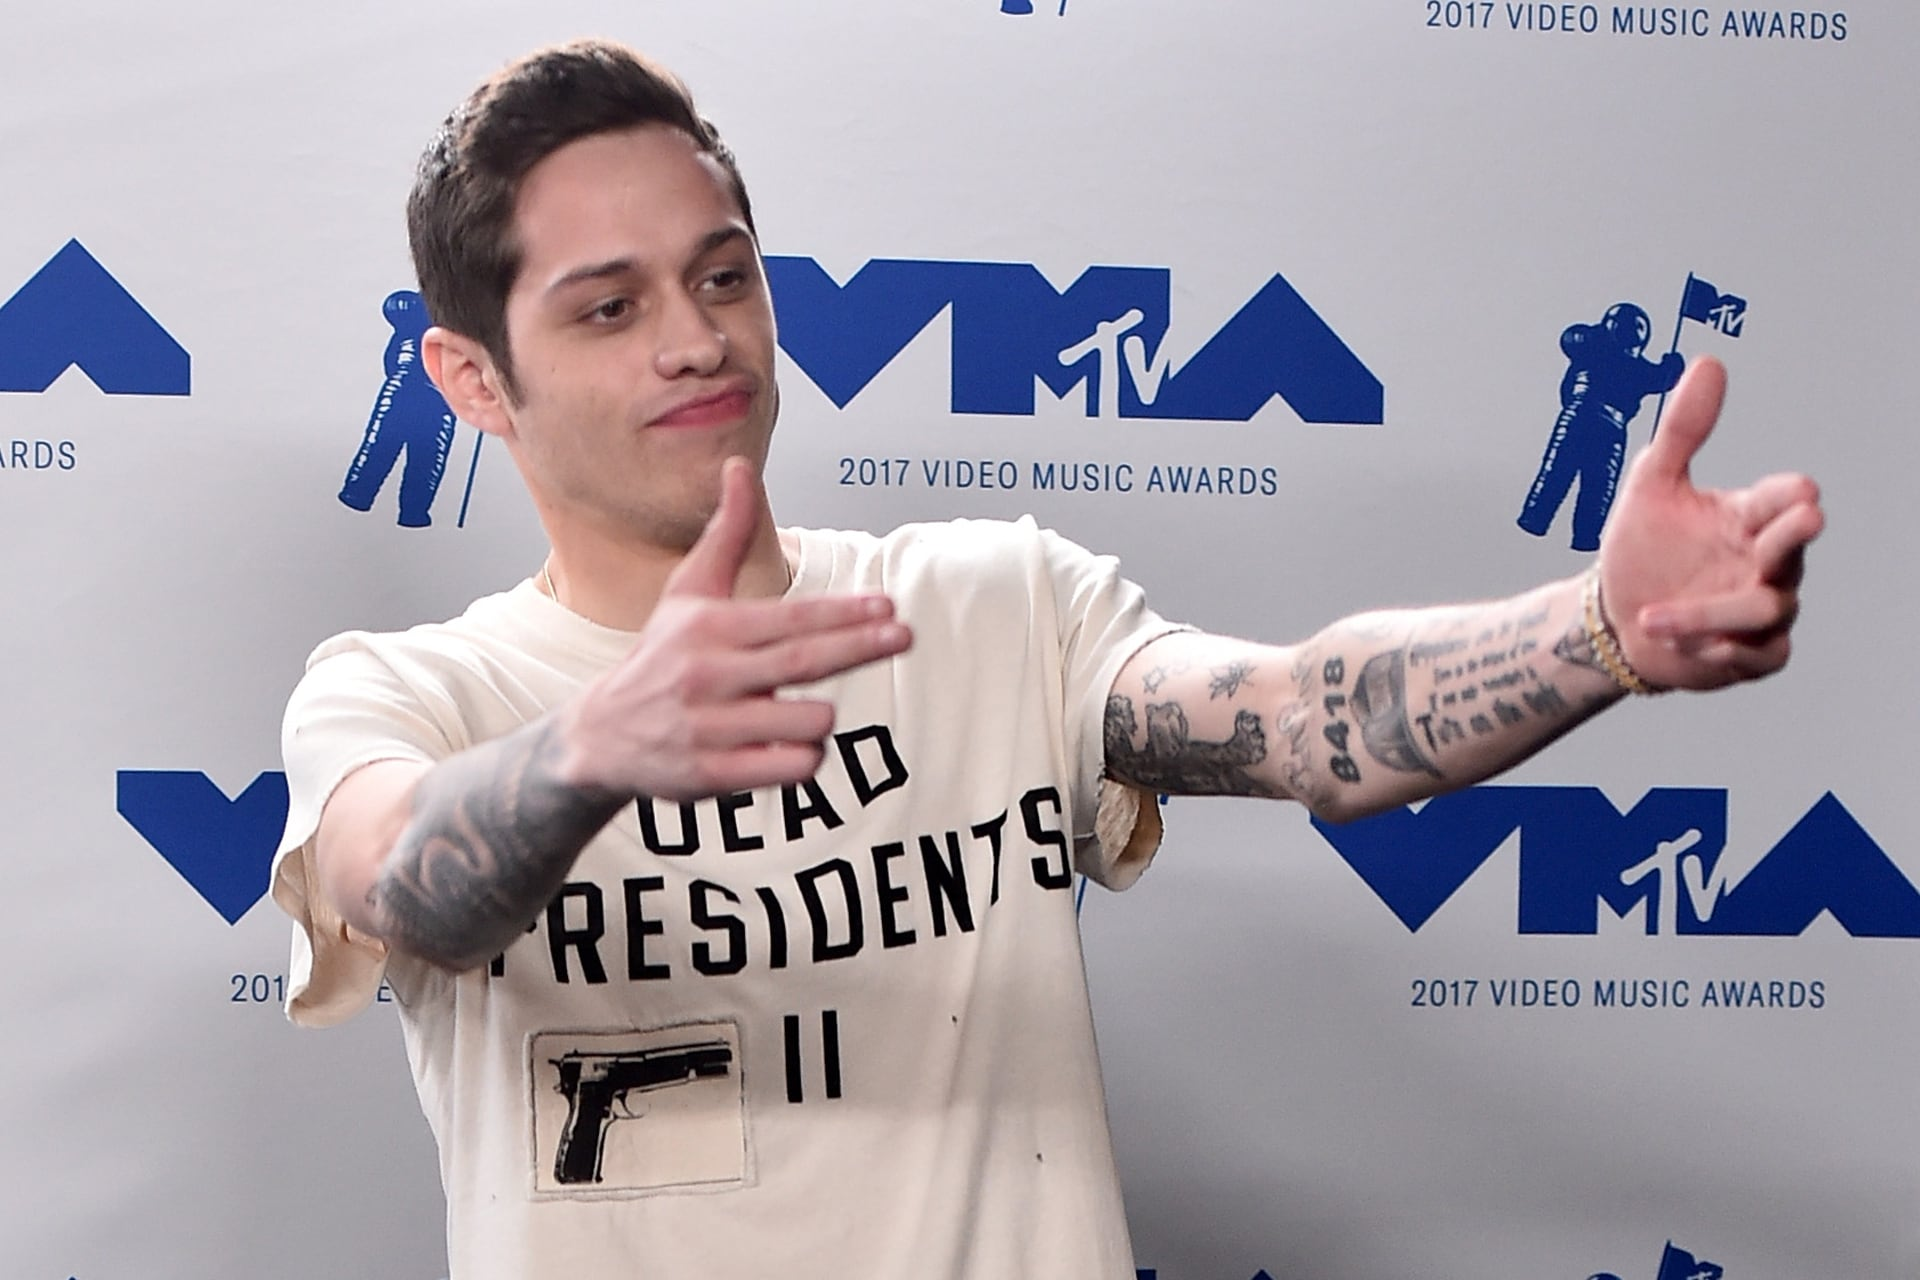 Pete Davidson attends the 2017 MTV Video Music Awards. Image credit: Getty Images